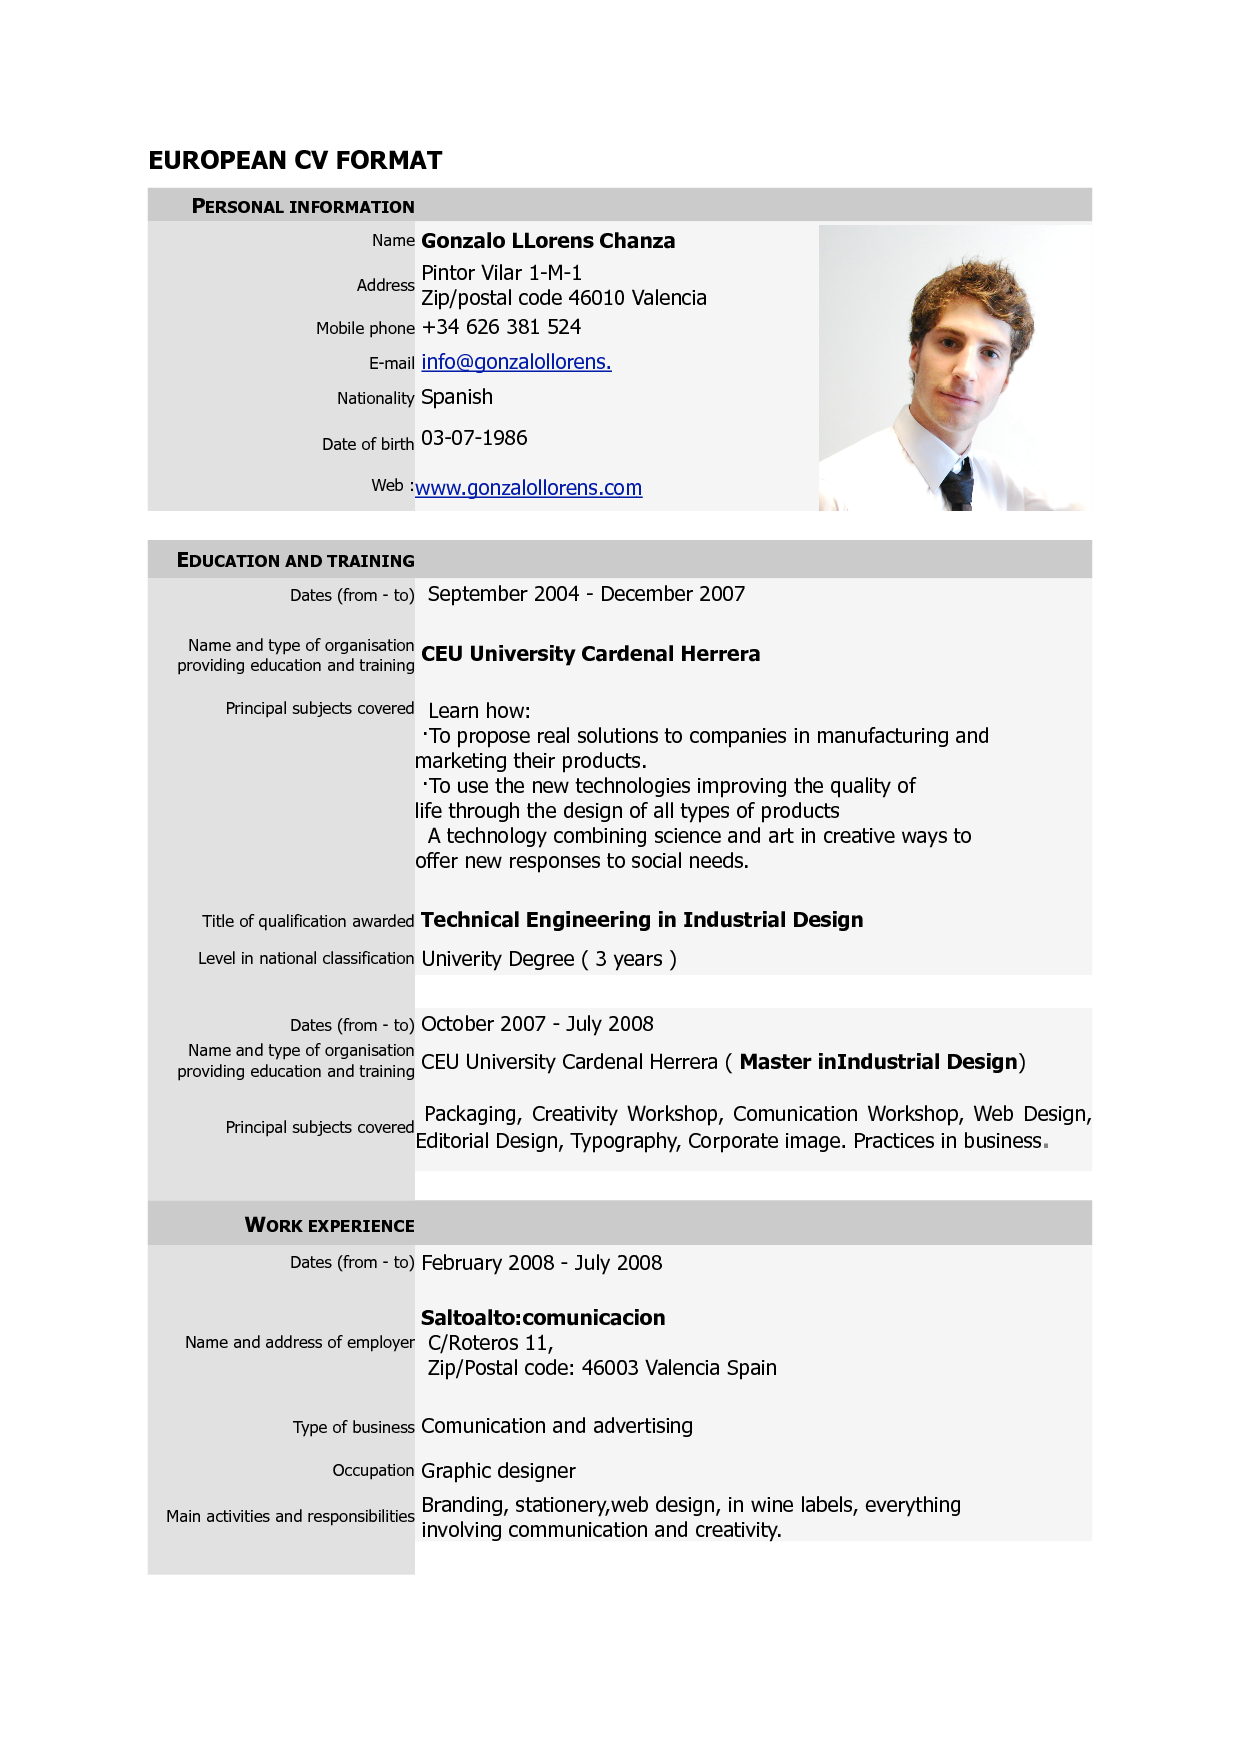 Resume Form Download Free Free Download Cv Europass Pdf Europass Home European Cv Format Pdf .